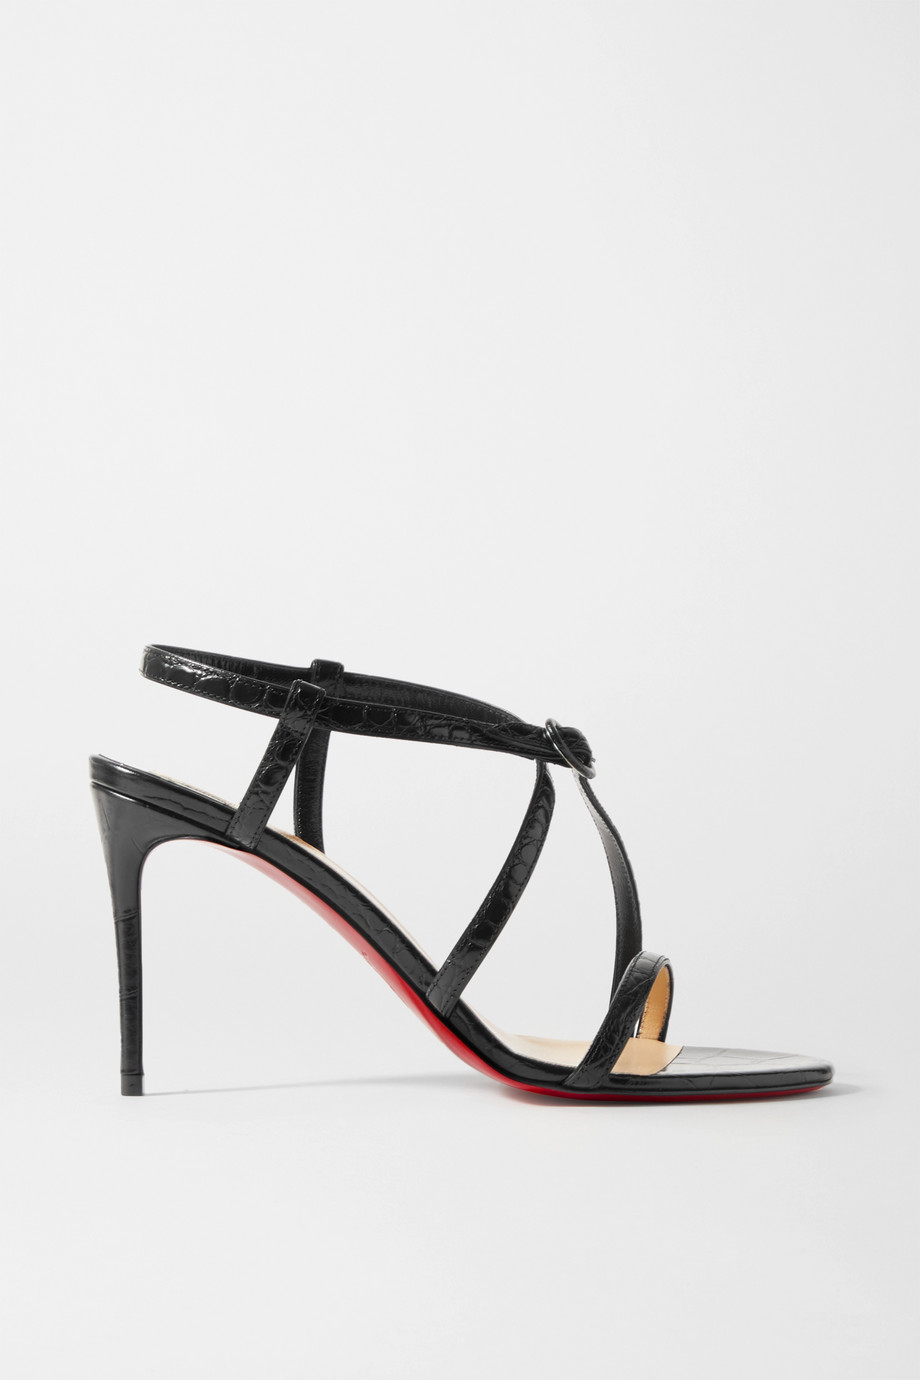 CHRISTIAN LOUBOUTIN Selima 85 croc-effect leather sandals